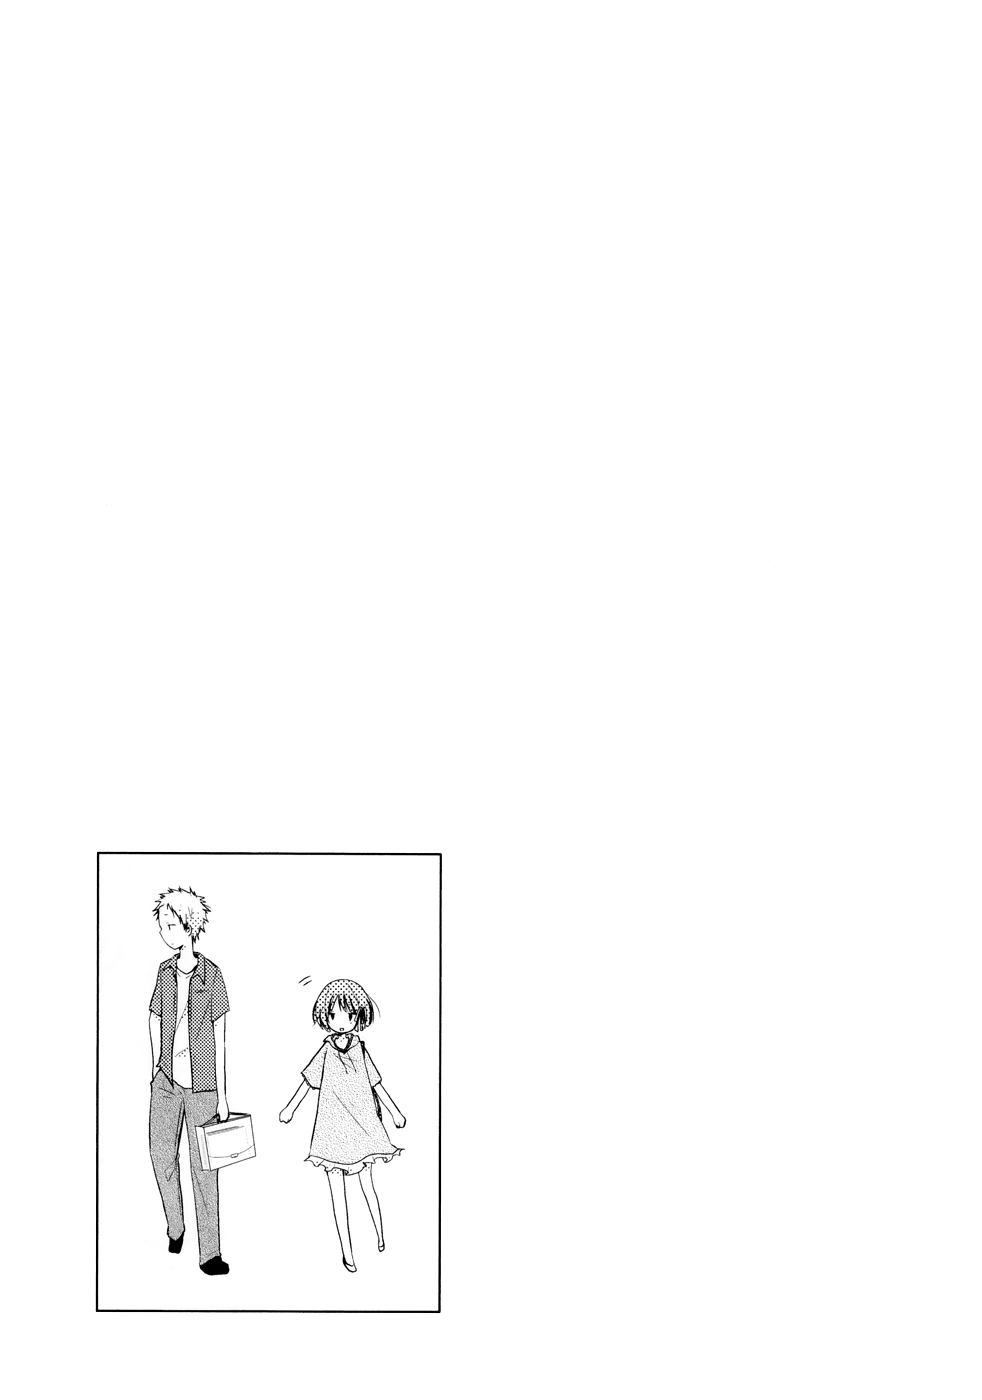 One Week Friends DST Chap 13.5 - Next Chap 14